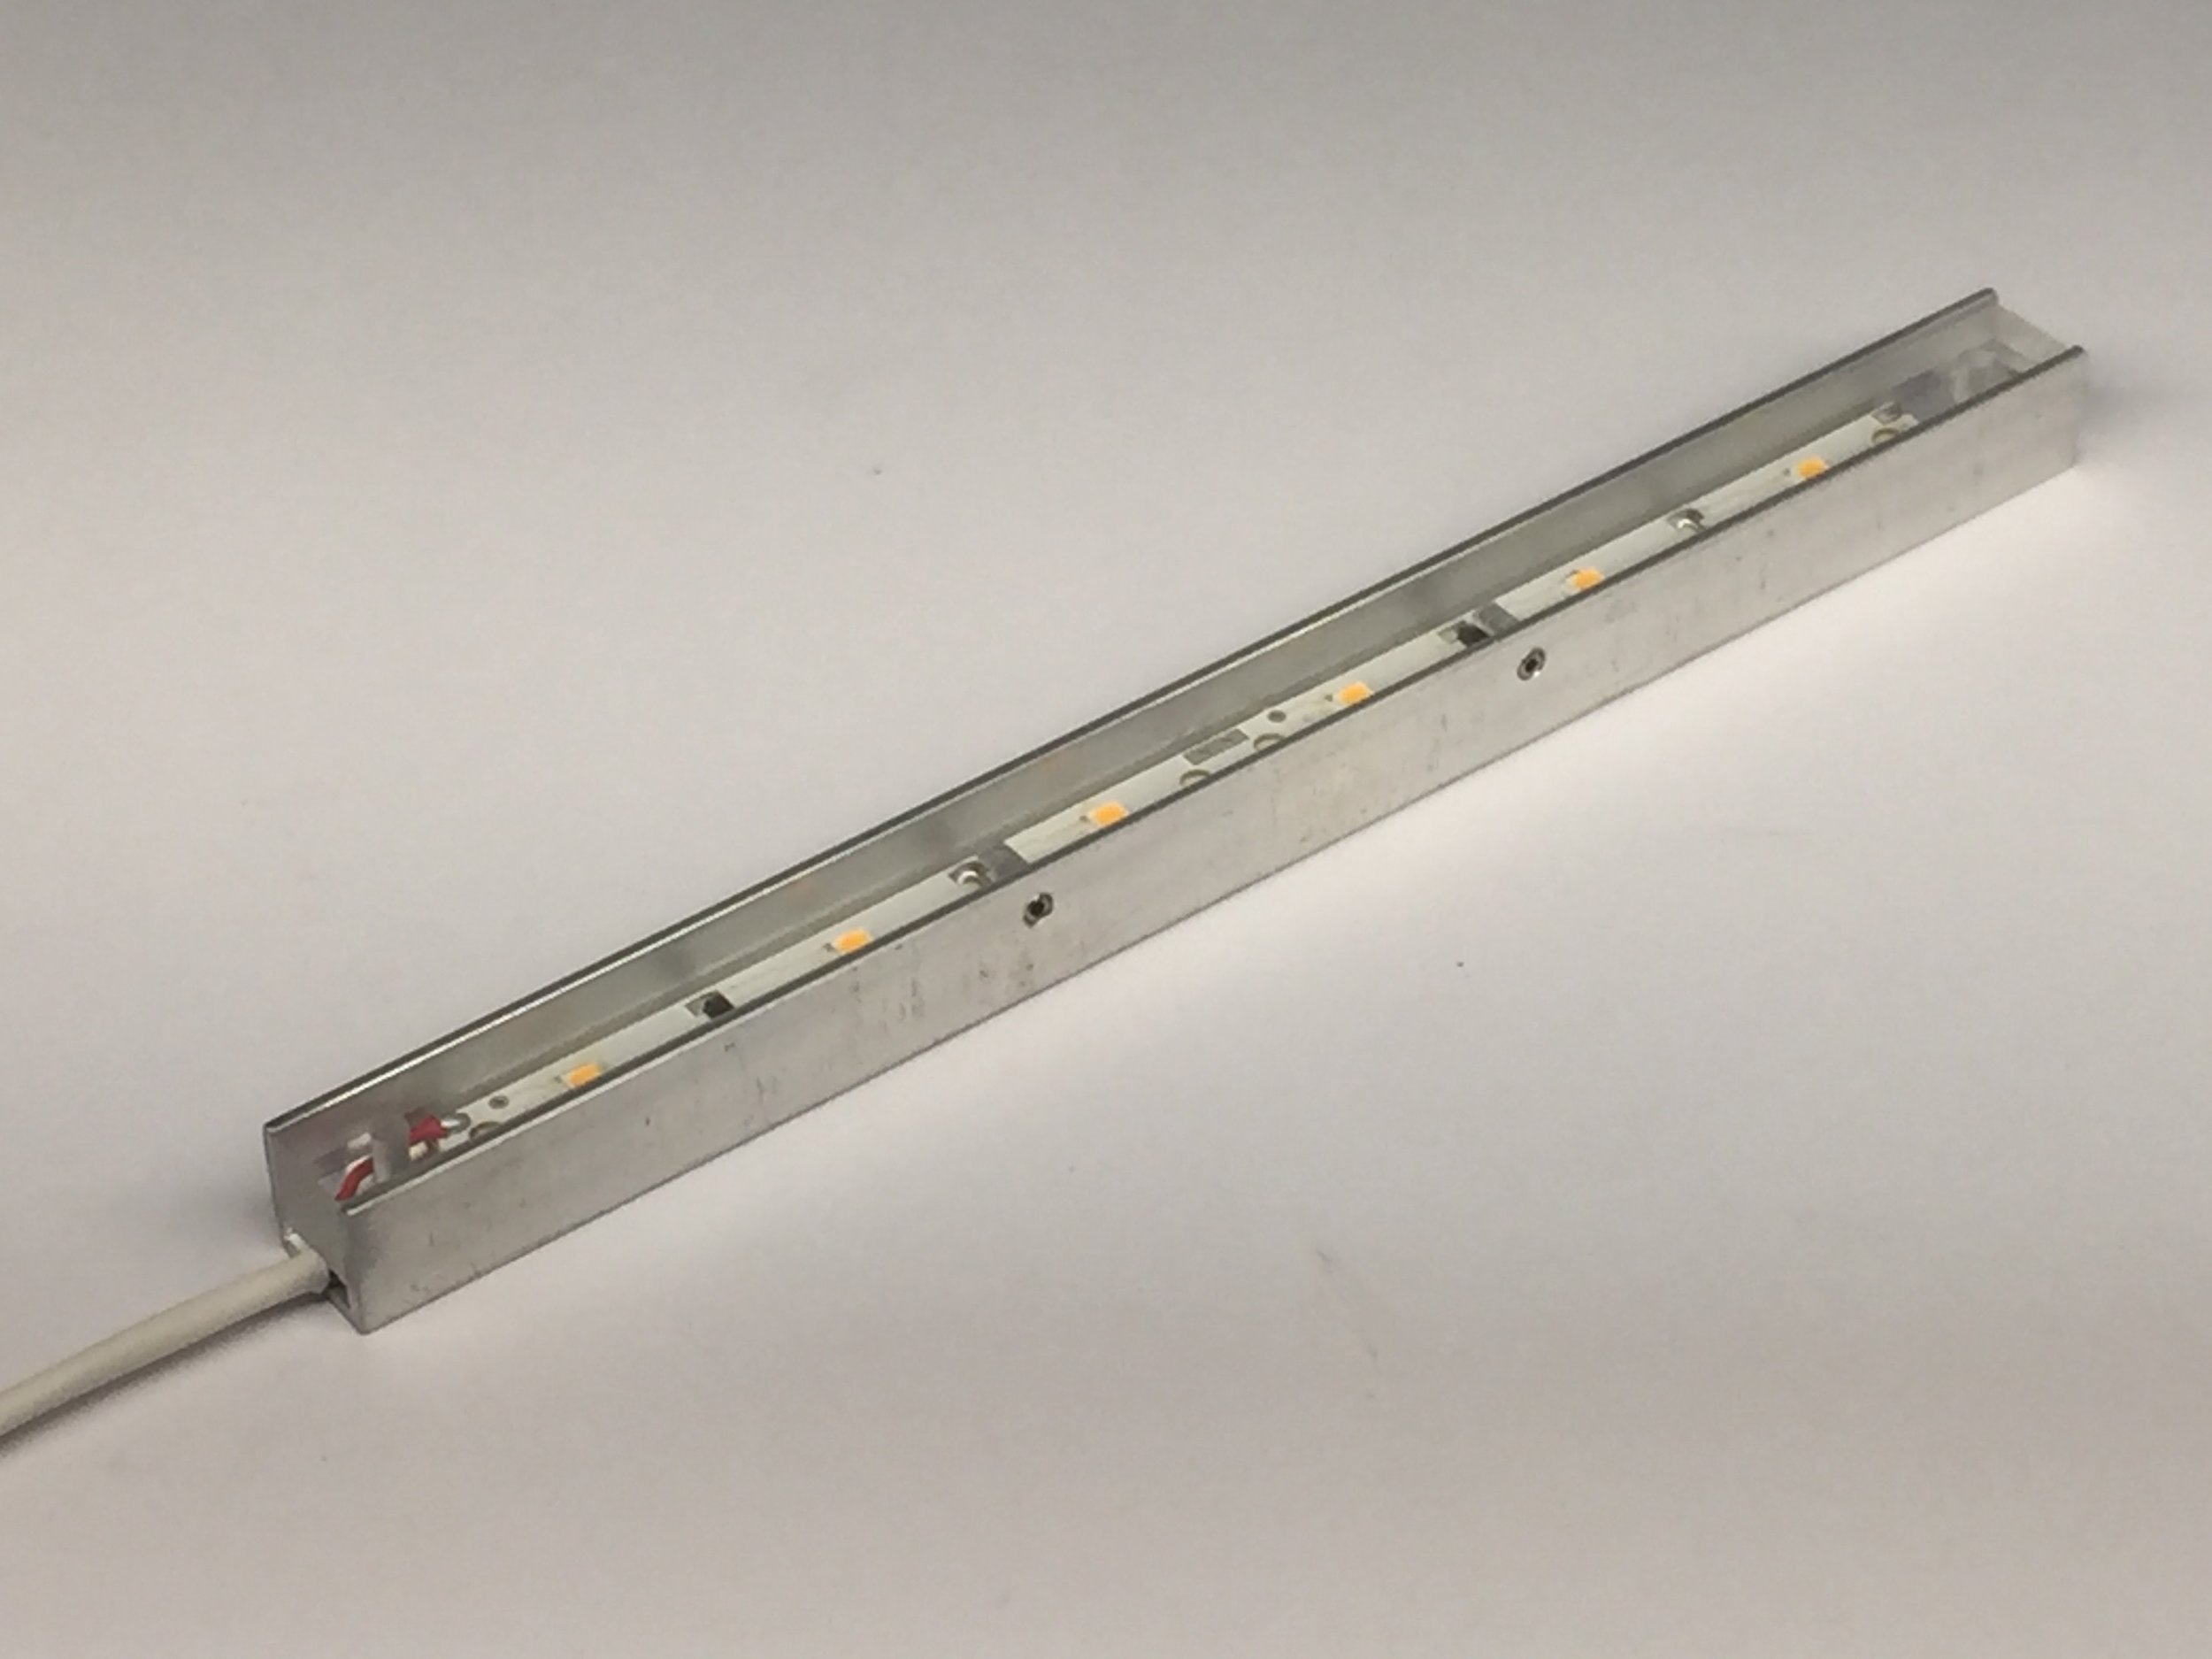 7 inch LED strip light with 6 LEDs with a CRI of 92